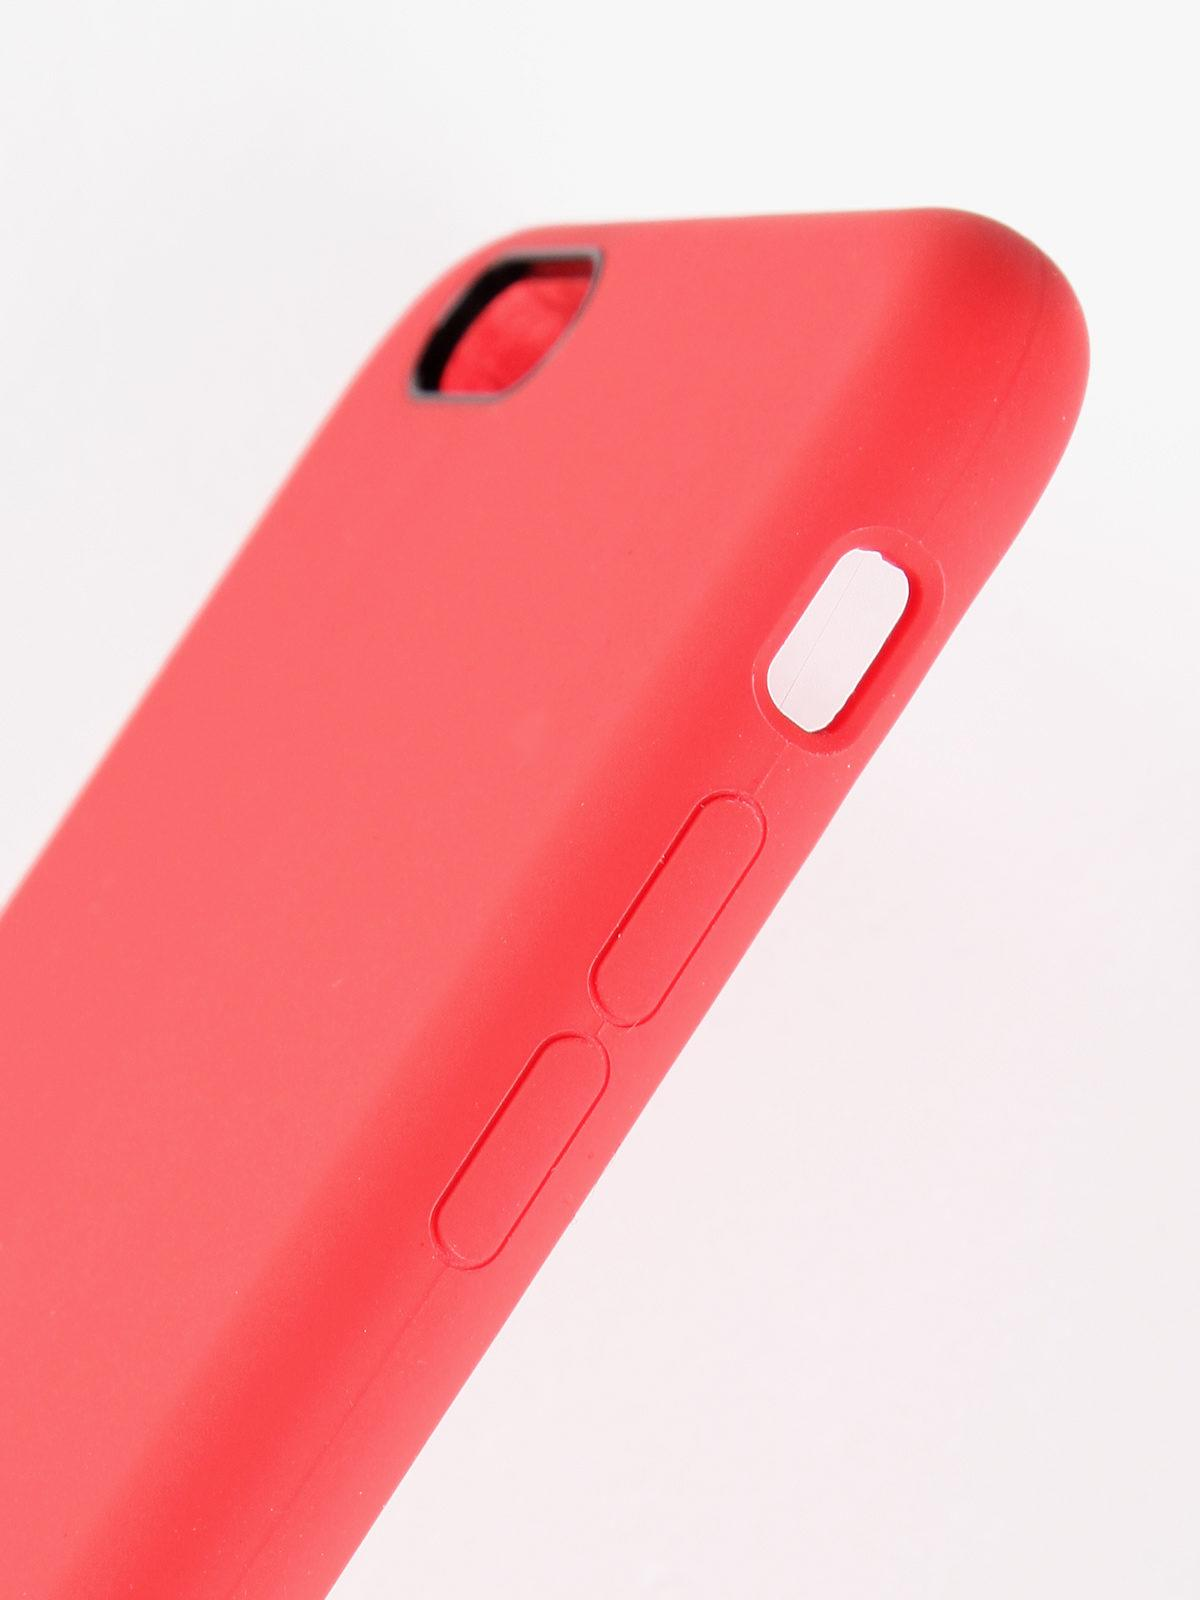 Siipro Custodia in silicone ultrasottile iphone 6/6s PLUS ...